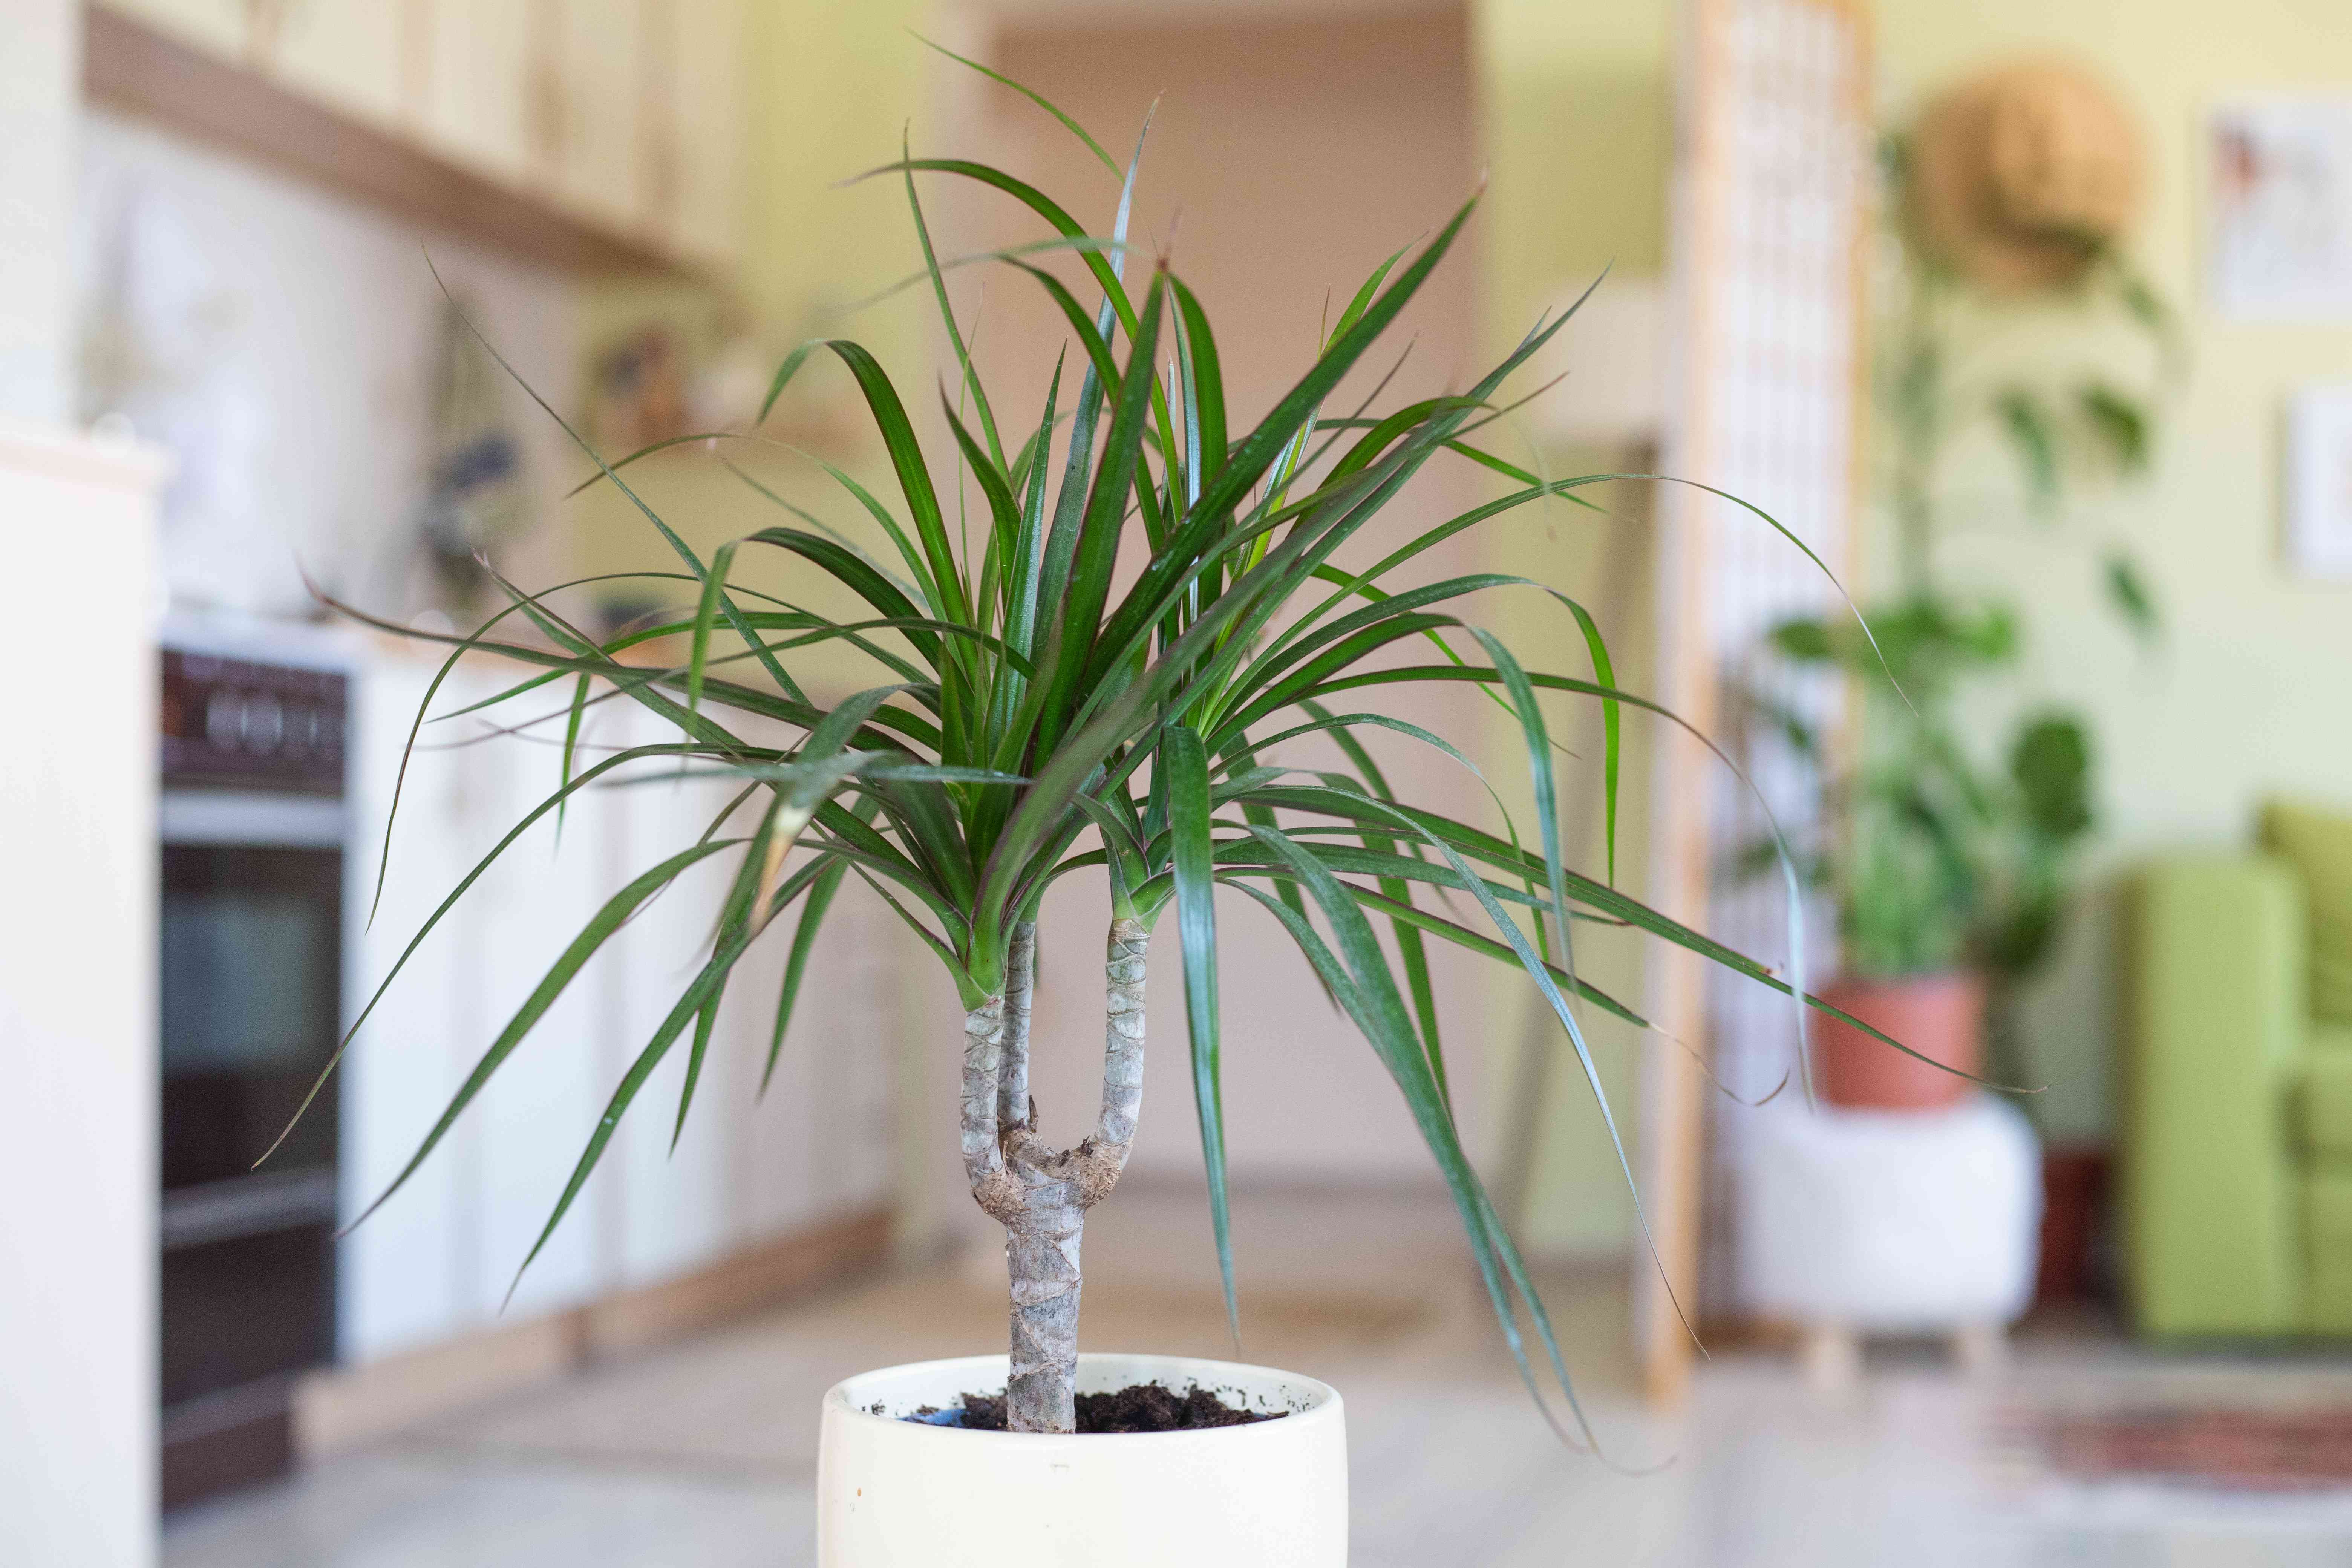 Dracaena house plant in white pot with studio apartment kitchen in background